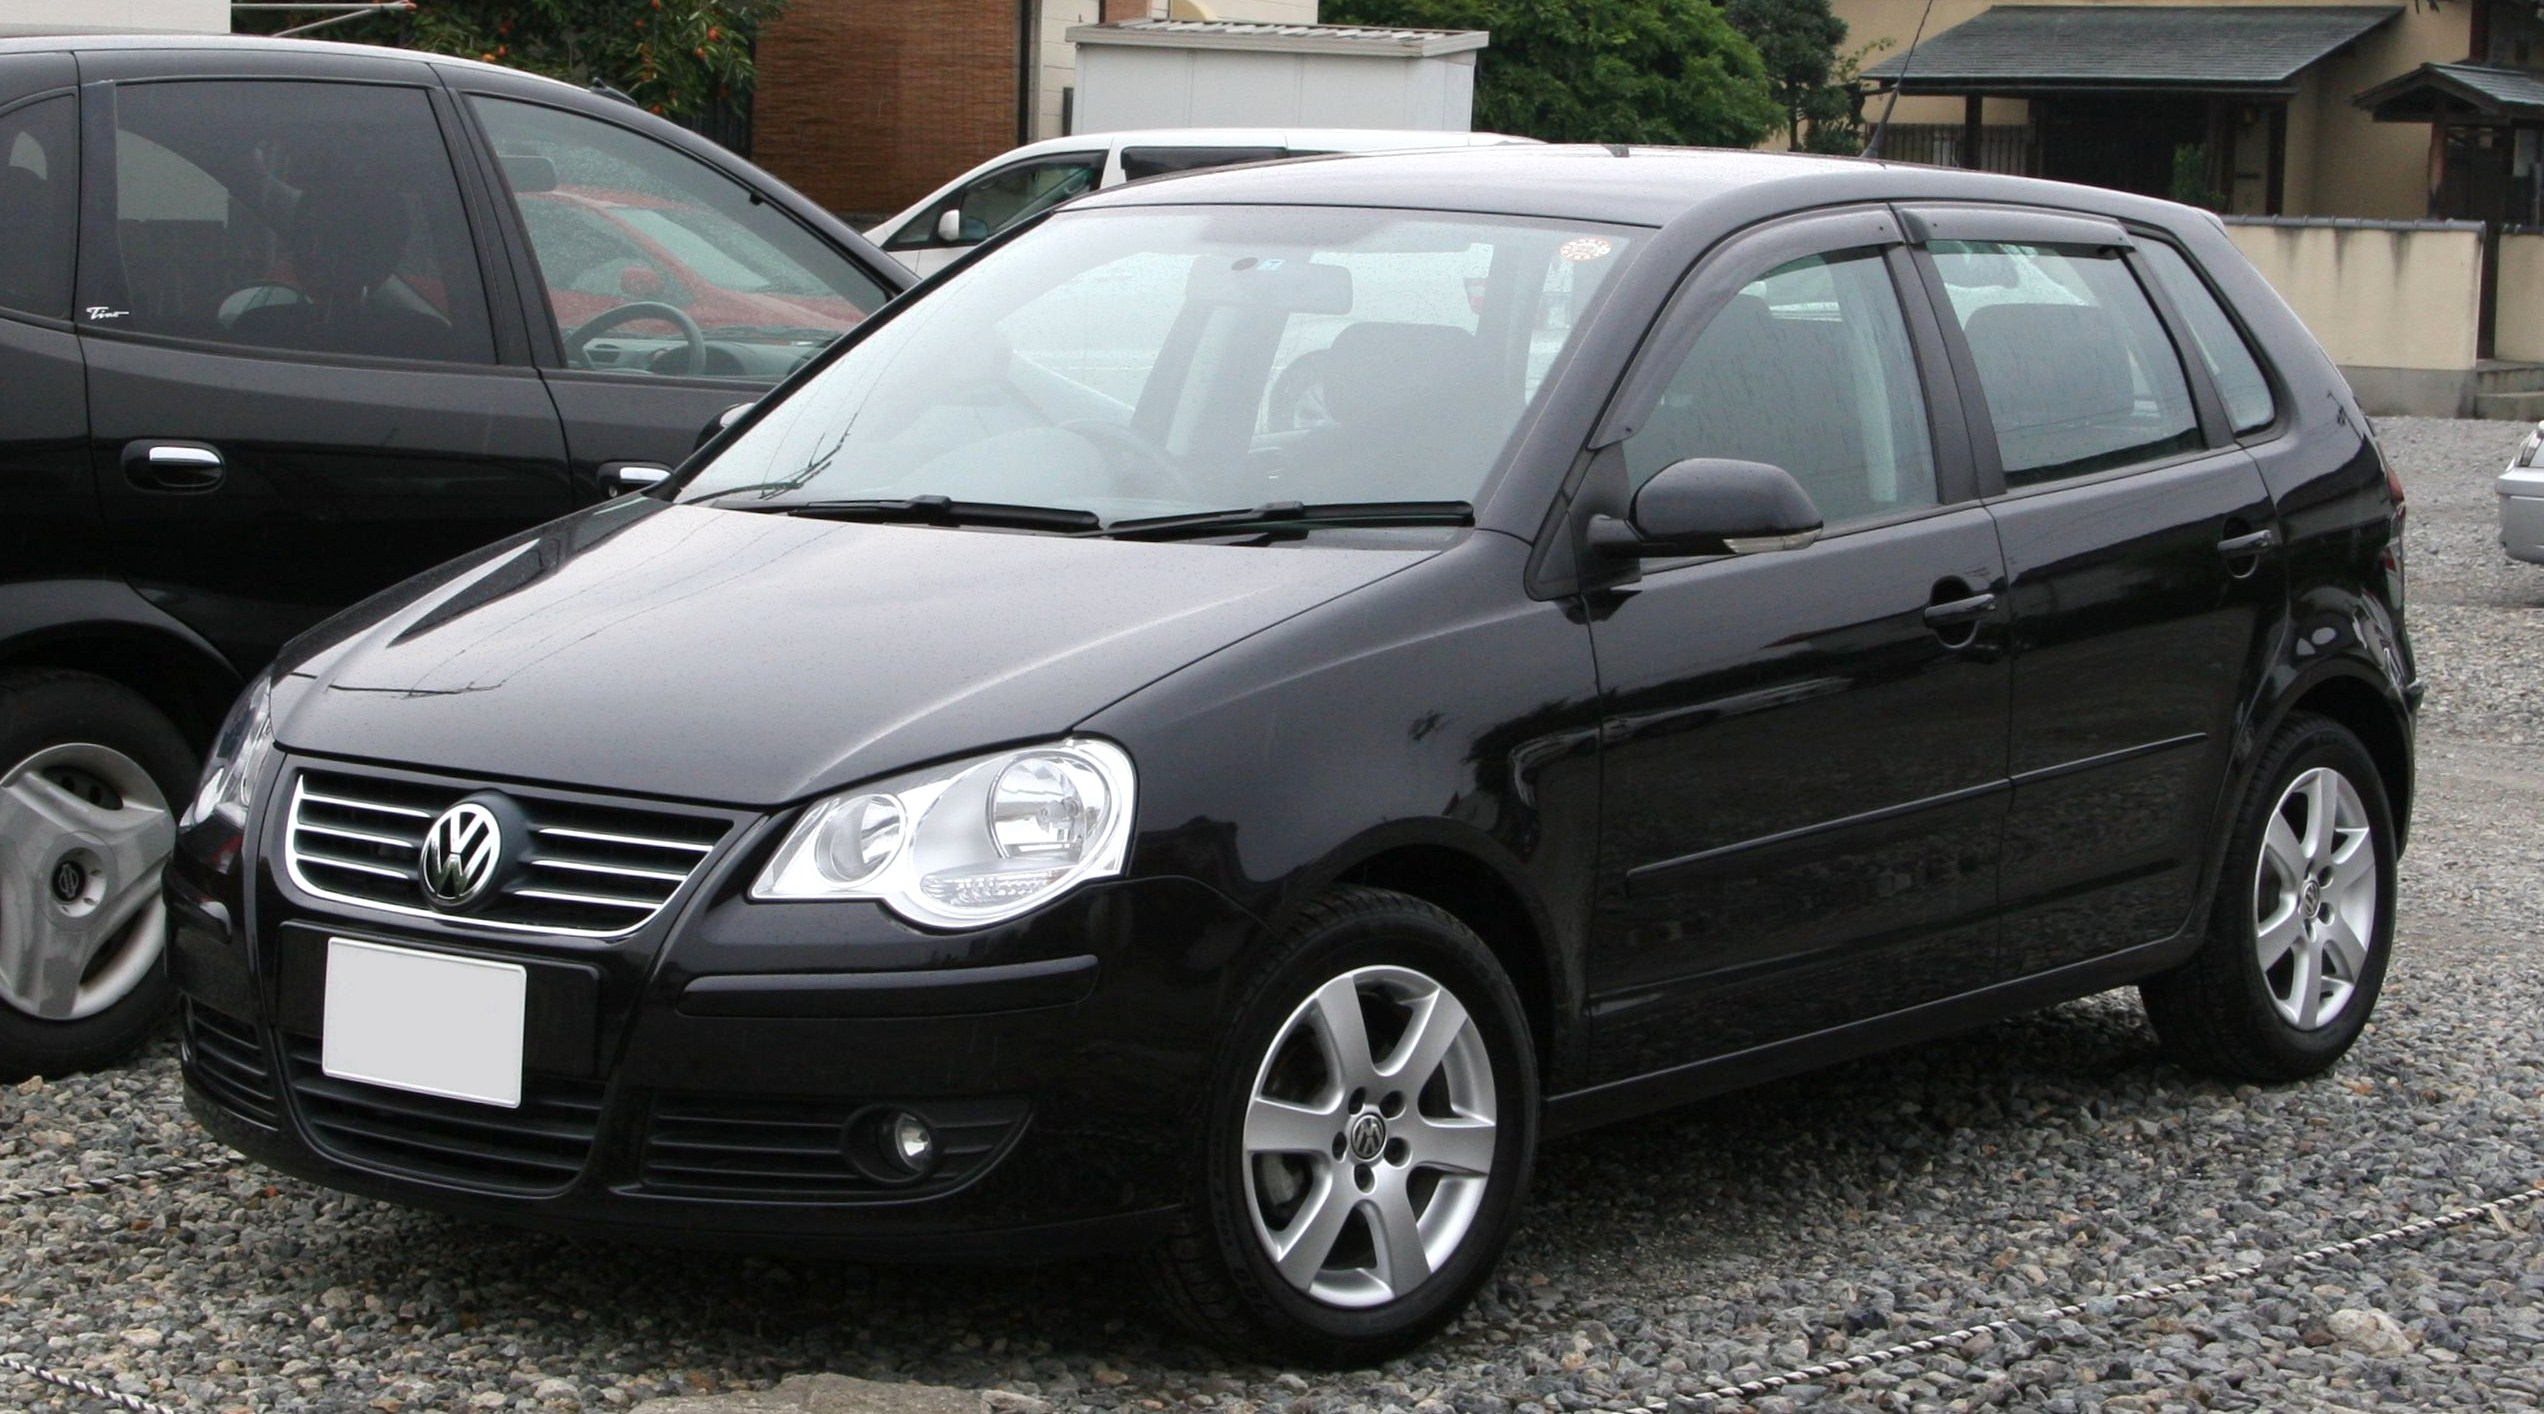 https://upload.wikimedia.org/wikipedia/commons/6/65/2005-2009_Volkswagen_Polo.jpg